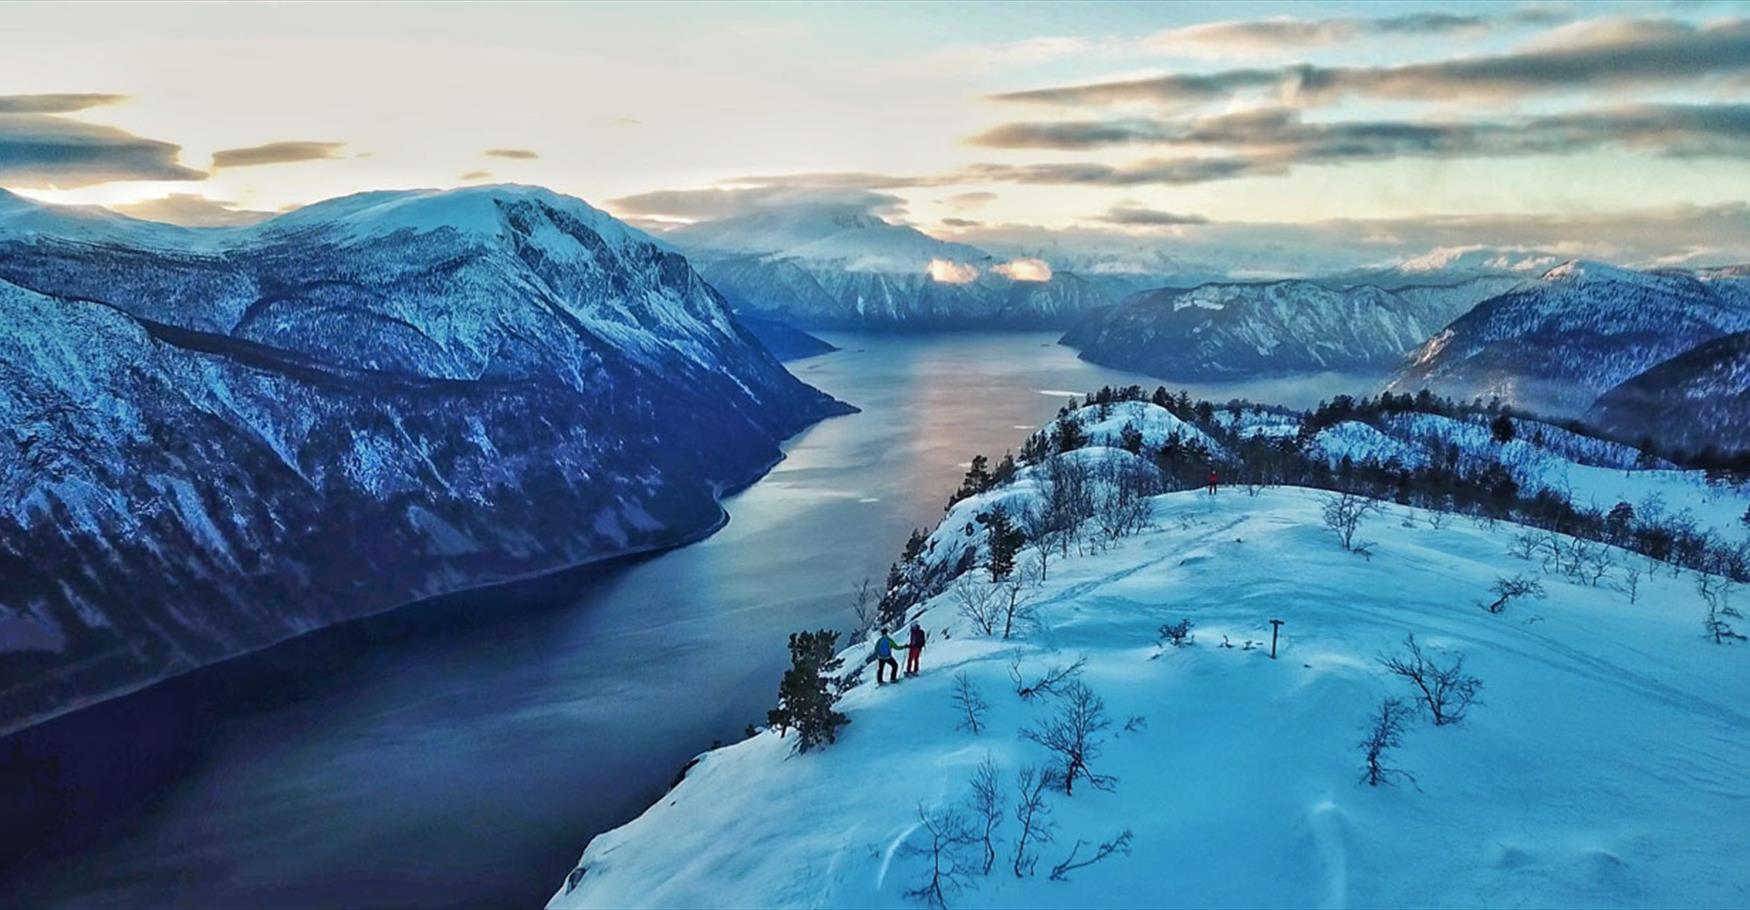 Snowshoe hike with fjord view